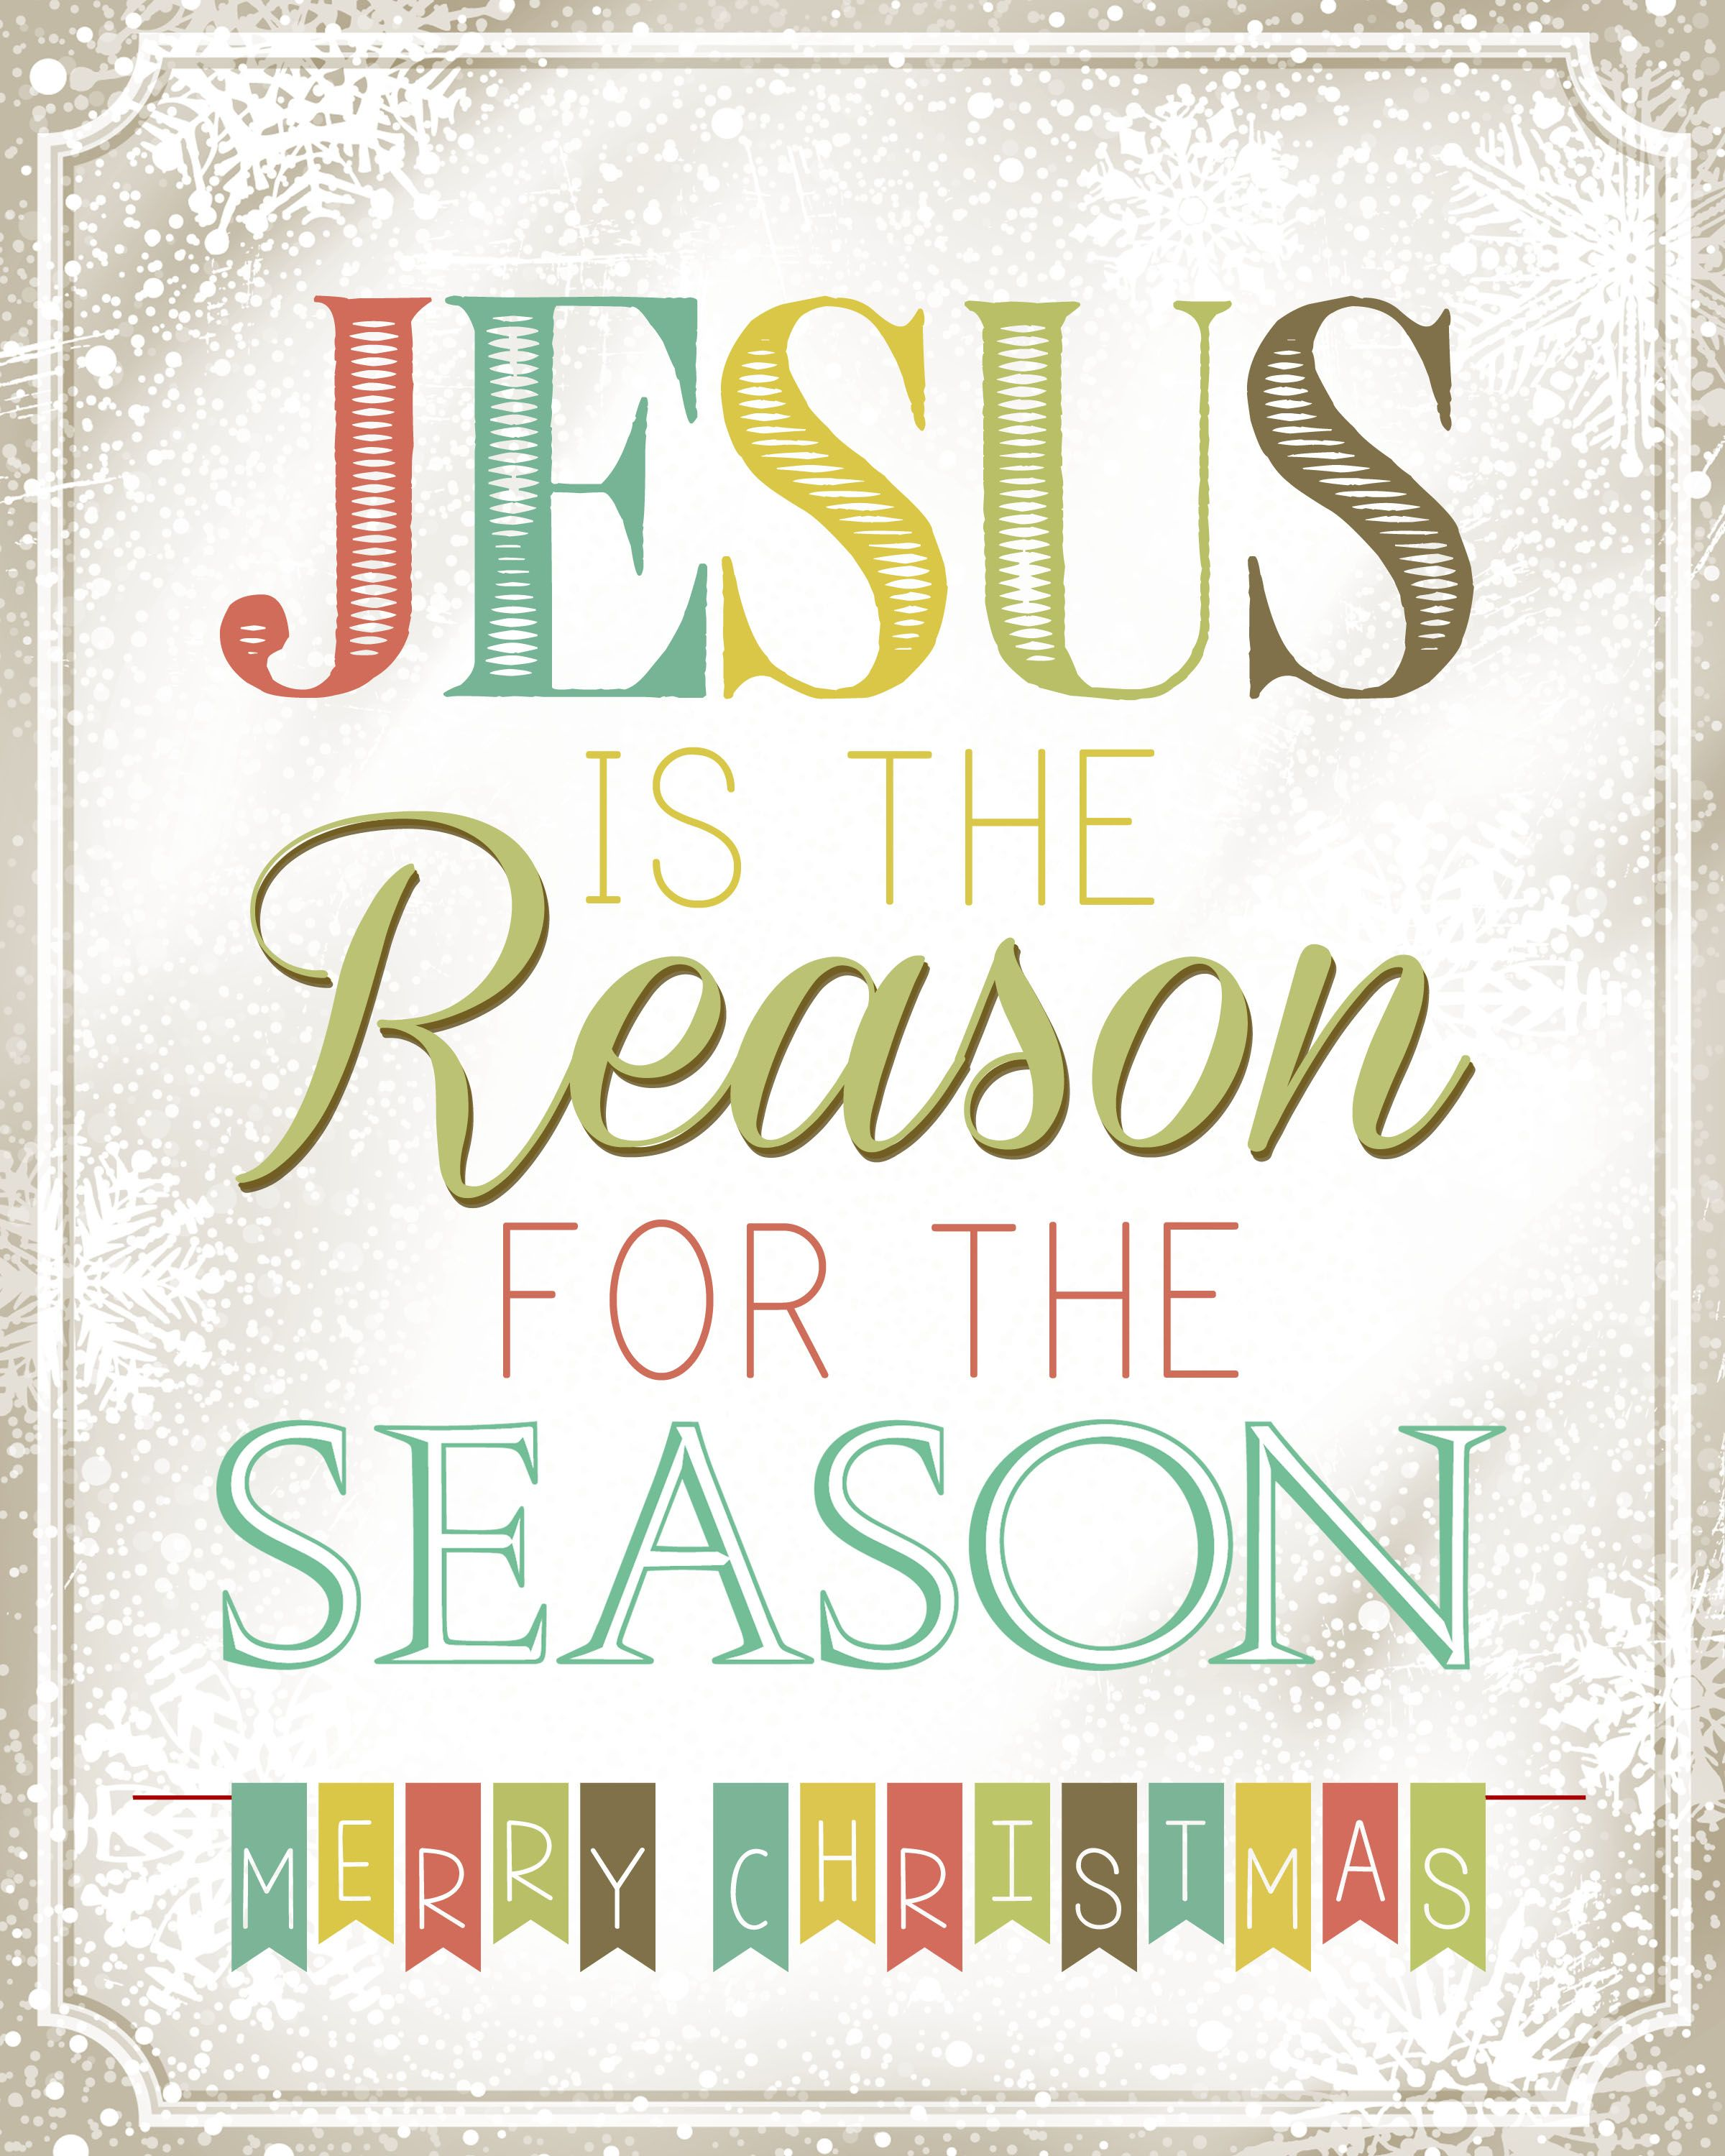 jesus is the reason for the season | Free Printables | Pinterest ...